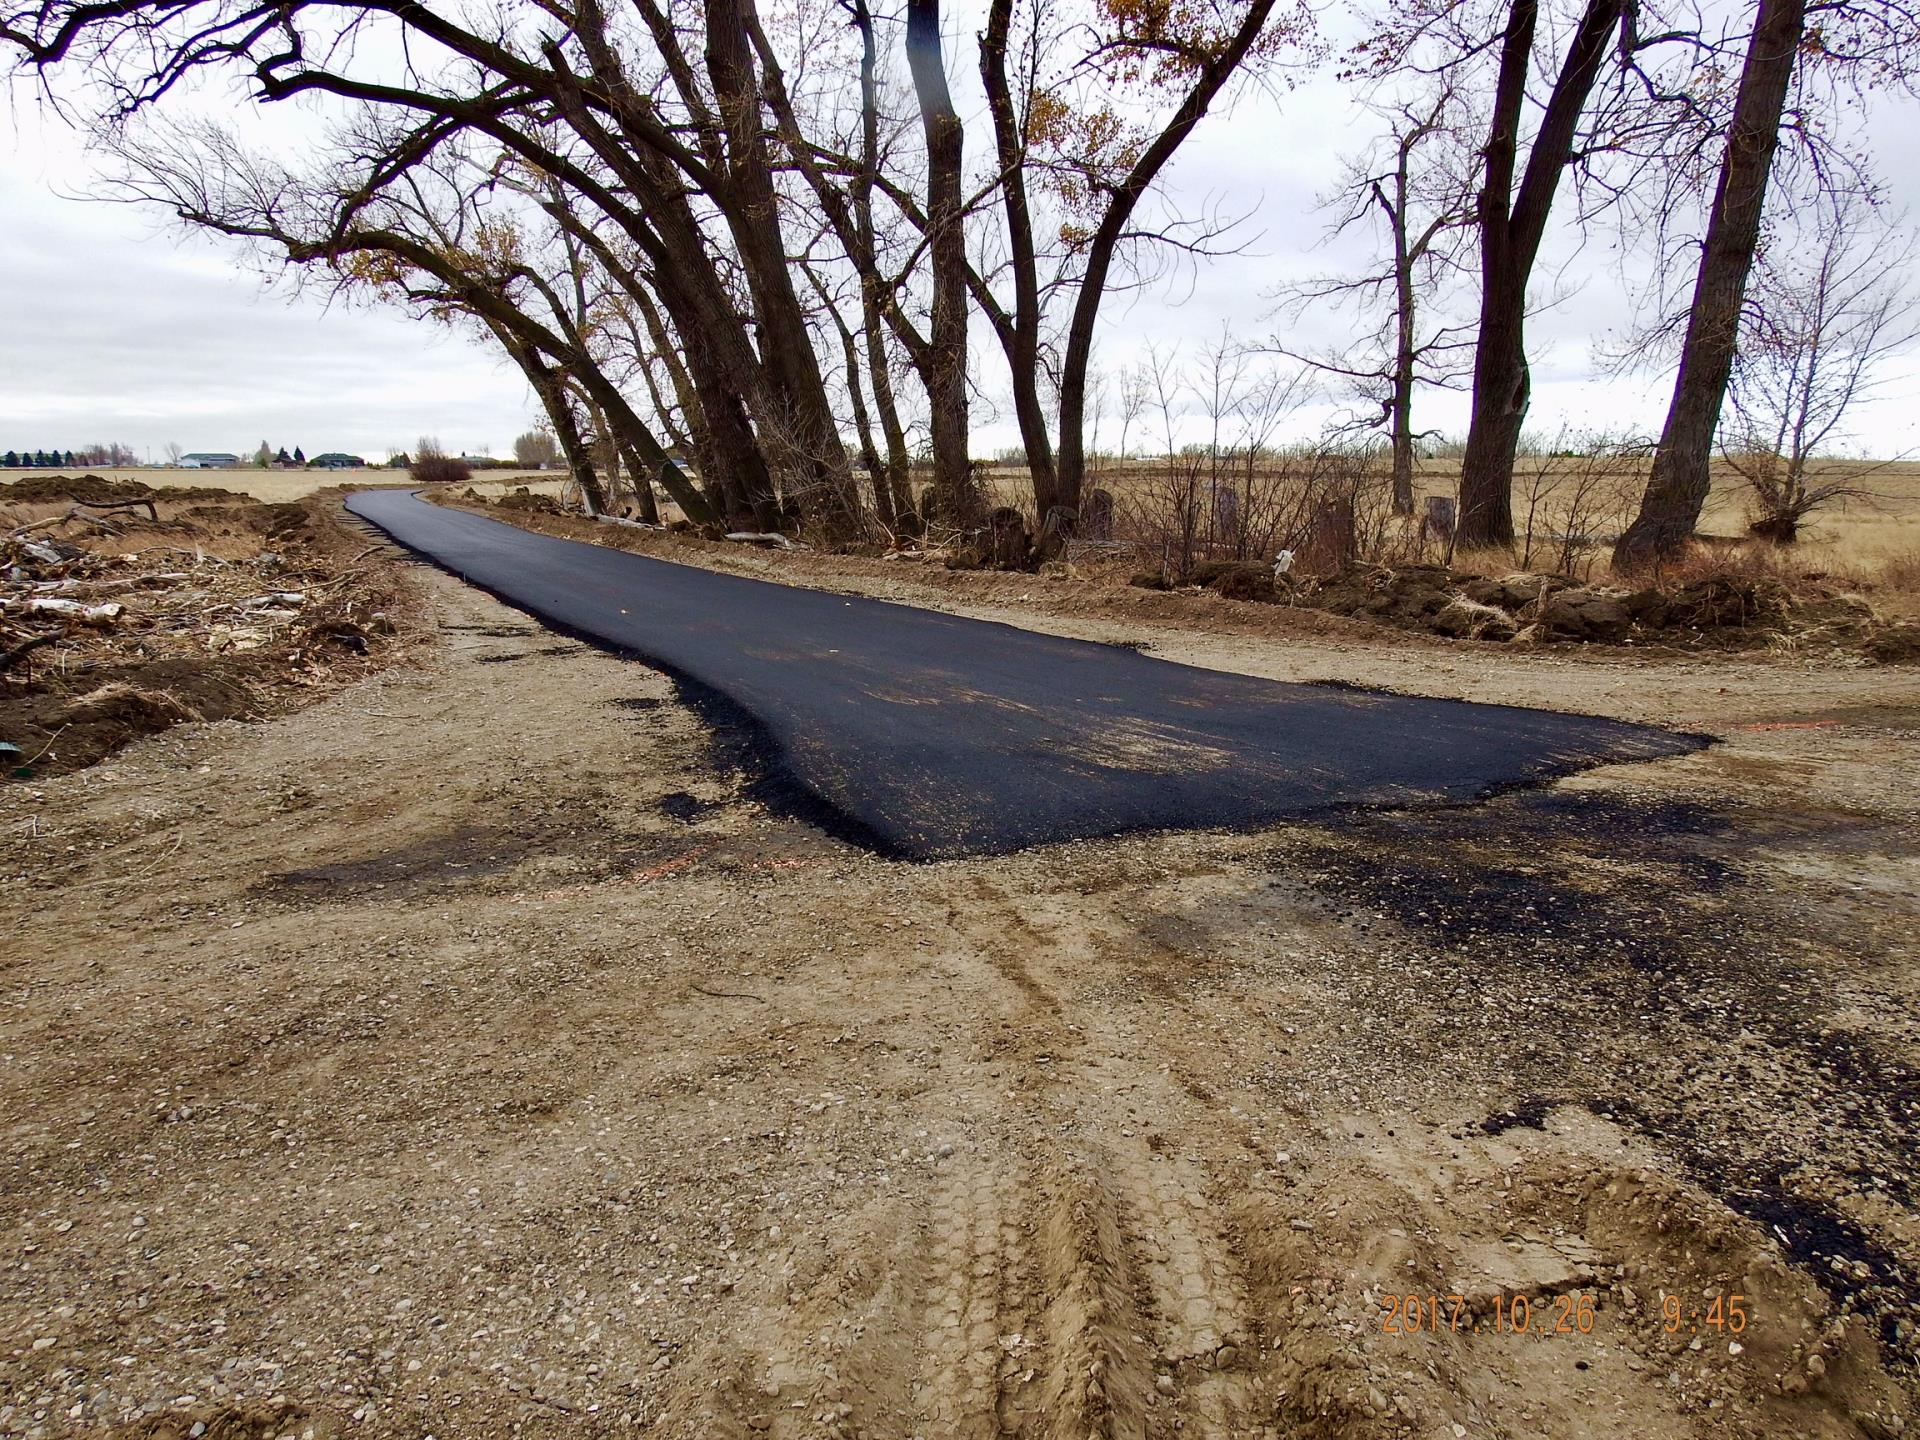 Paving Work on Walking Trails - October 2017